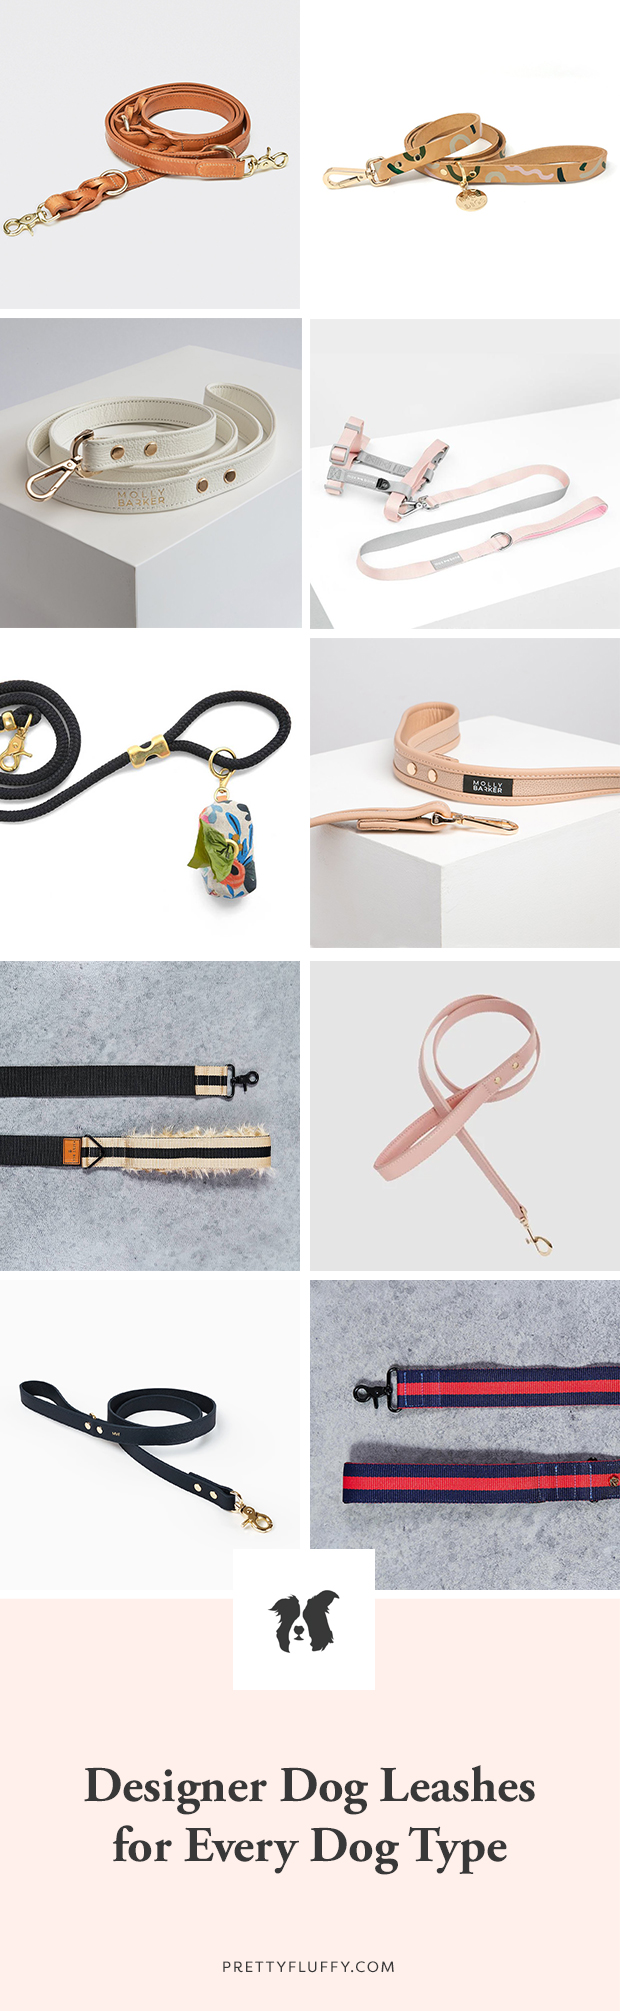 Our top picks of designer dog leashes this season - for all breeds and sizes. Includes leather, fabric, rope and convertible leads and accessories.